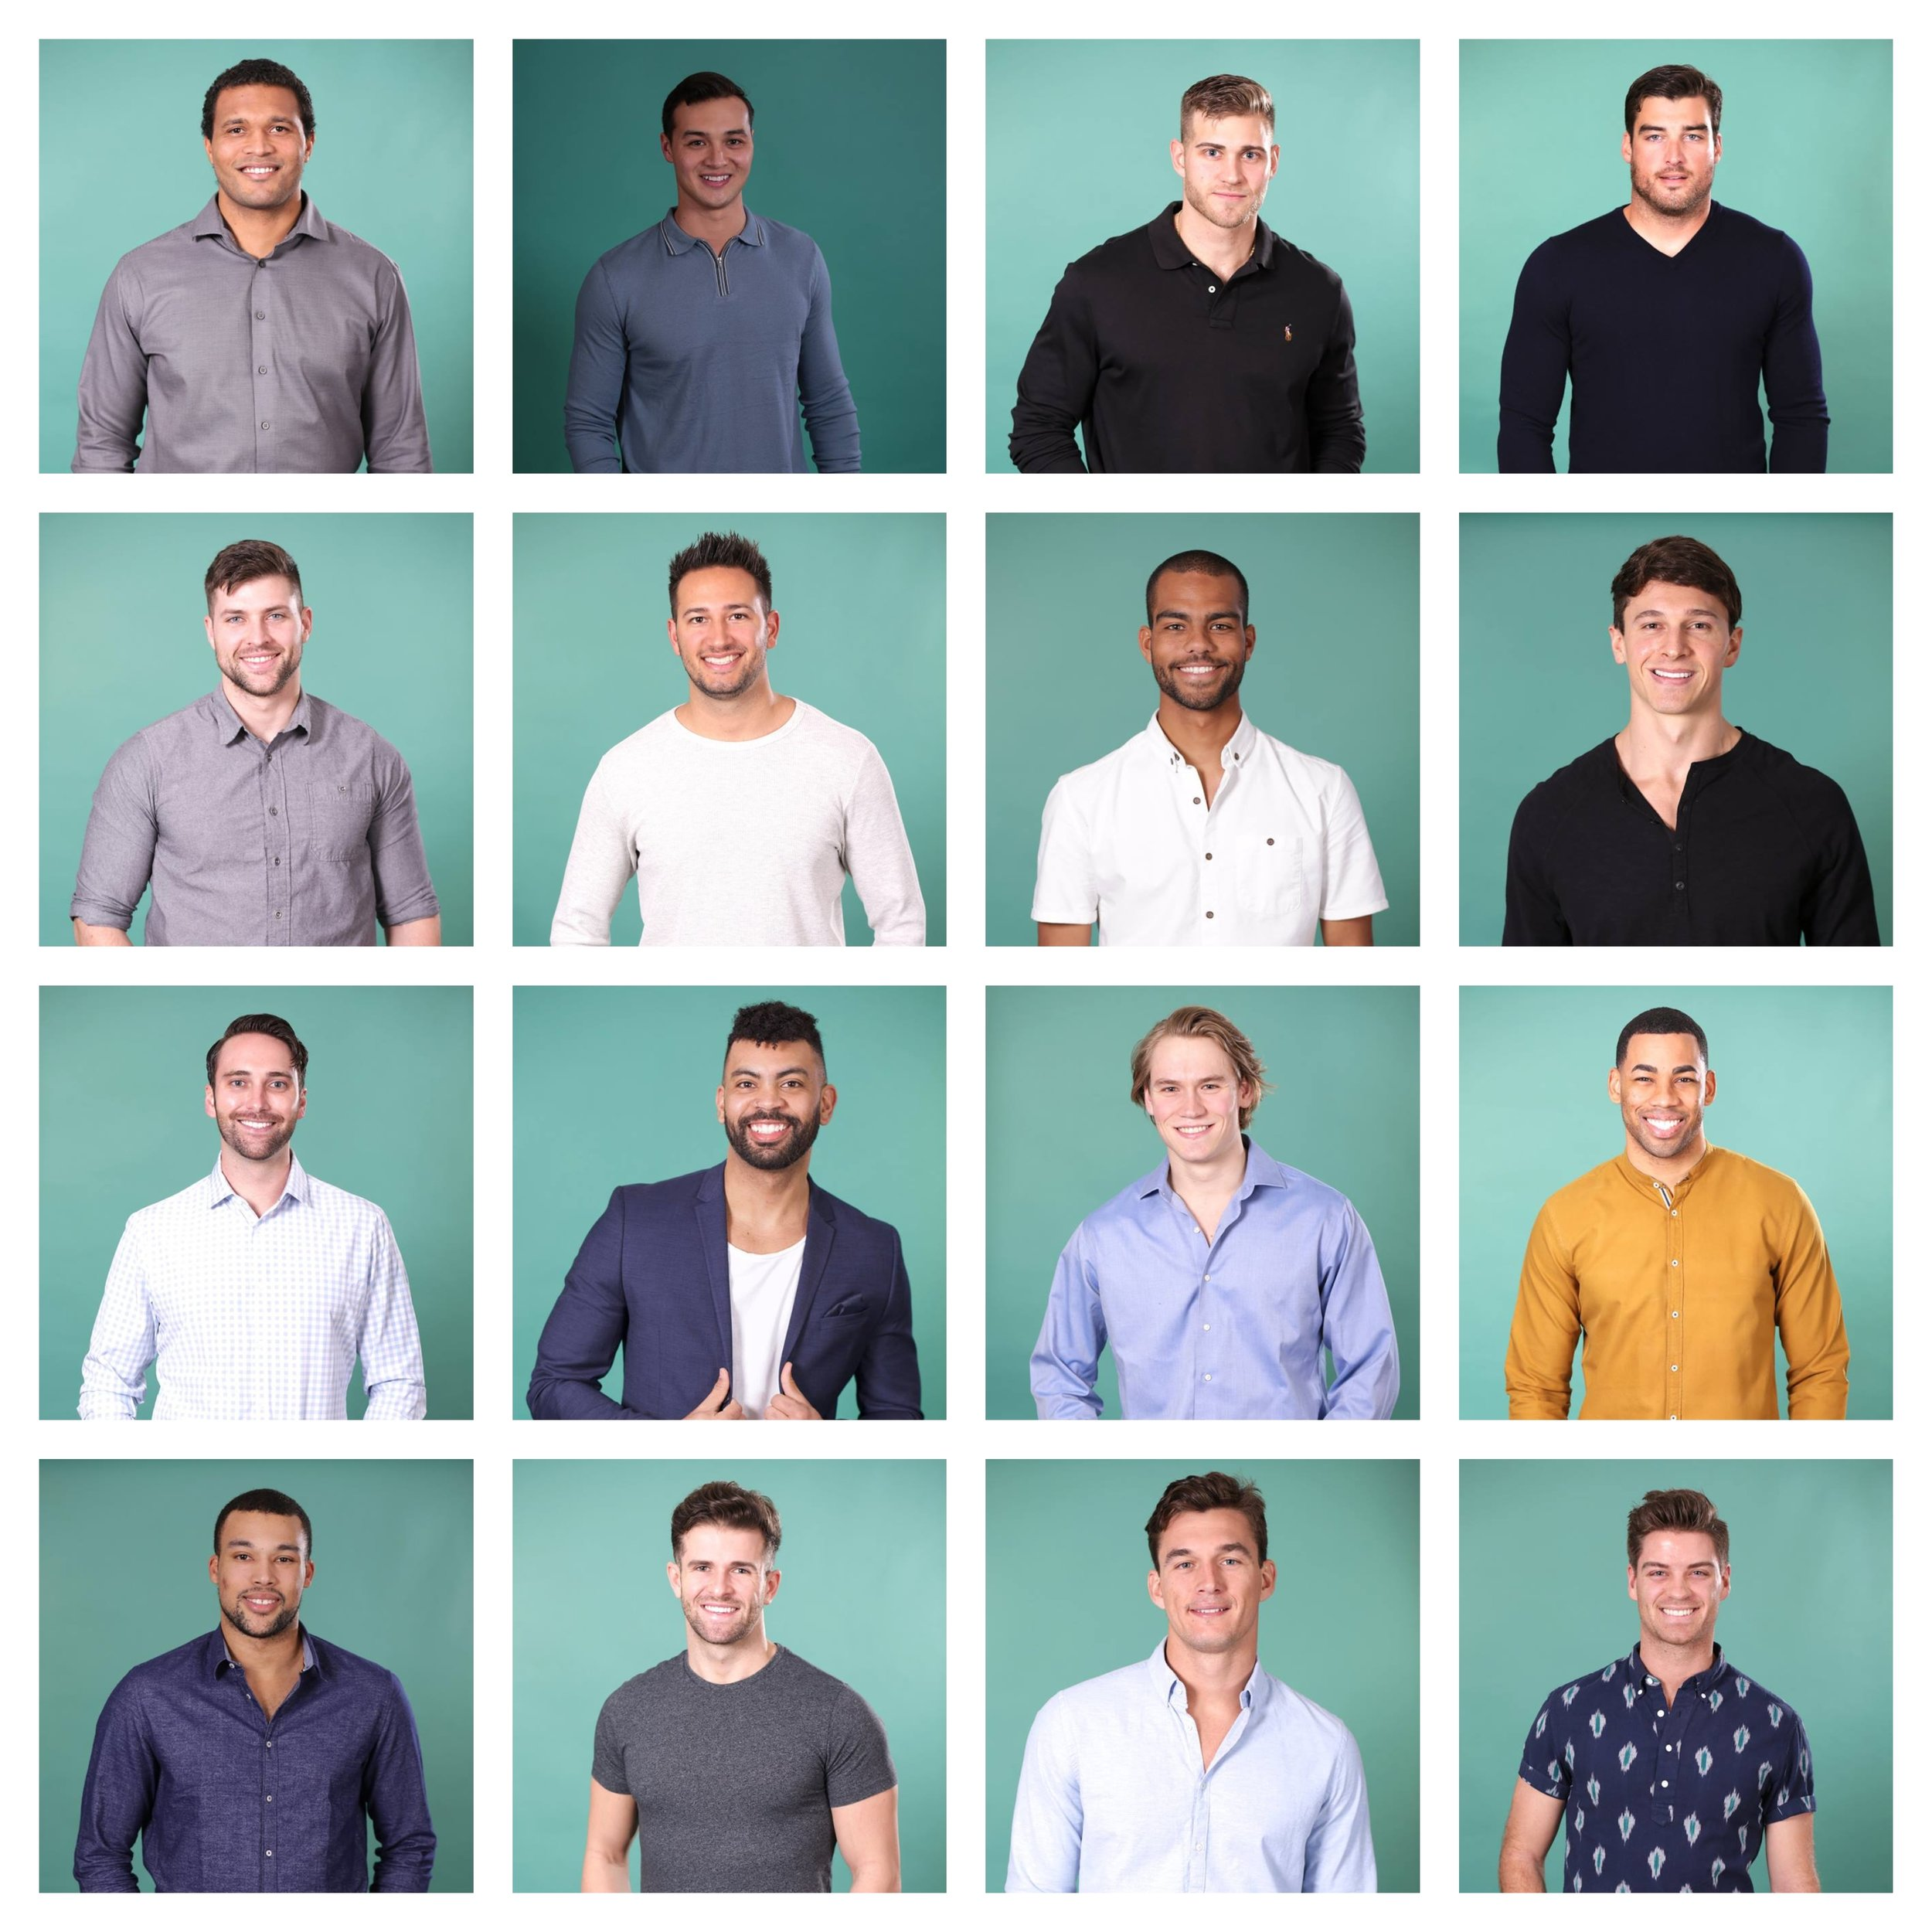 ABC gave us a giant gift in the form of early Bachelor pics - was this their sneaky way of crowd-sourcing background checks? We may never know, but we DO know that at least two dudes they released are no longer on the  Bachelorette Facebook account , so do with that what you will.